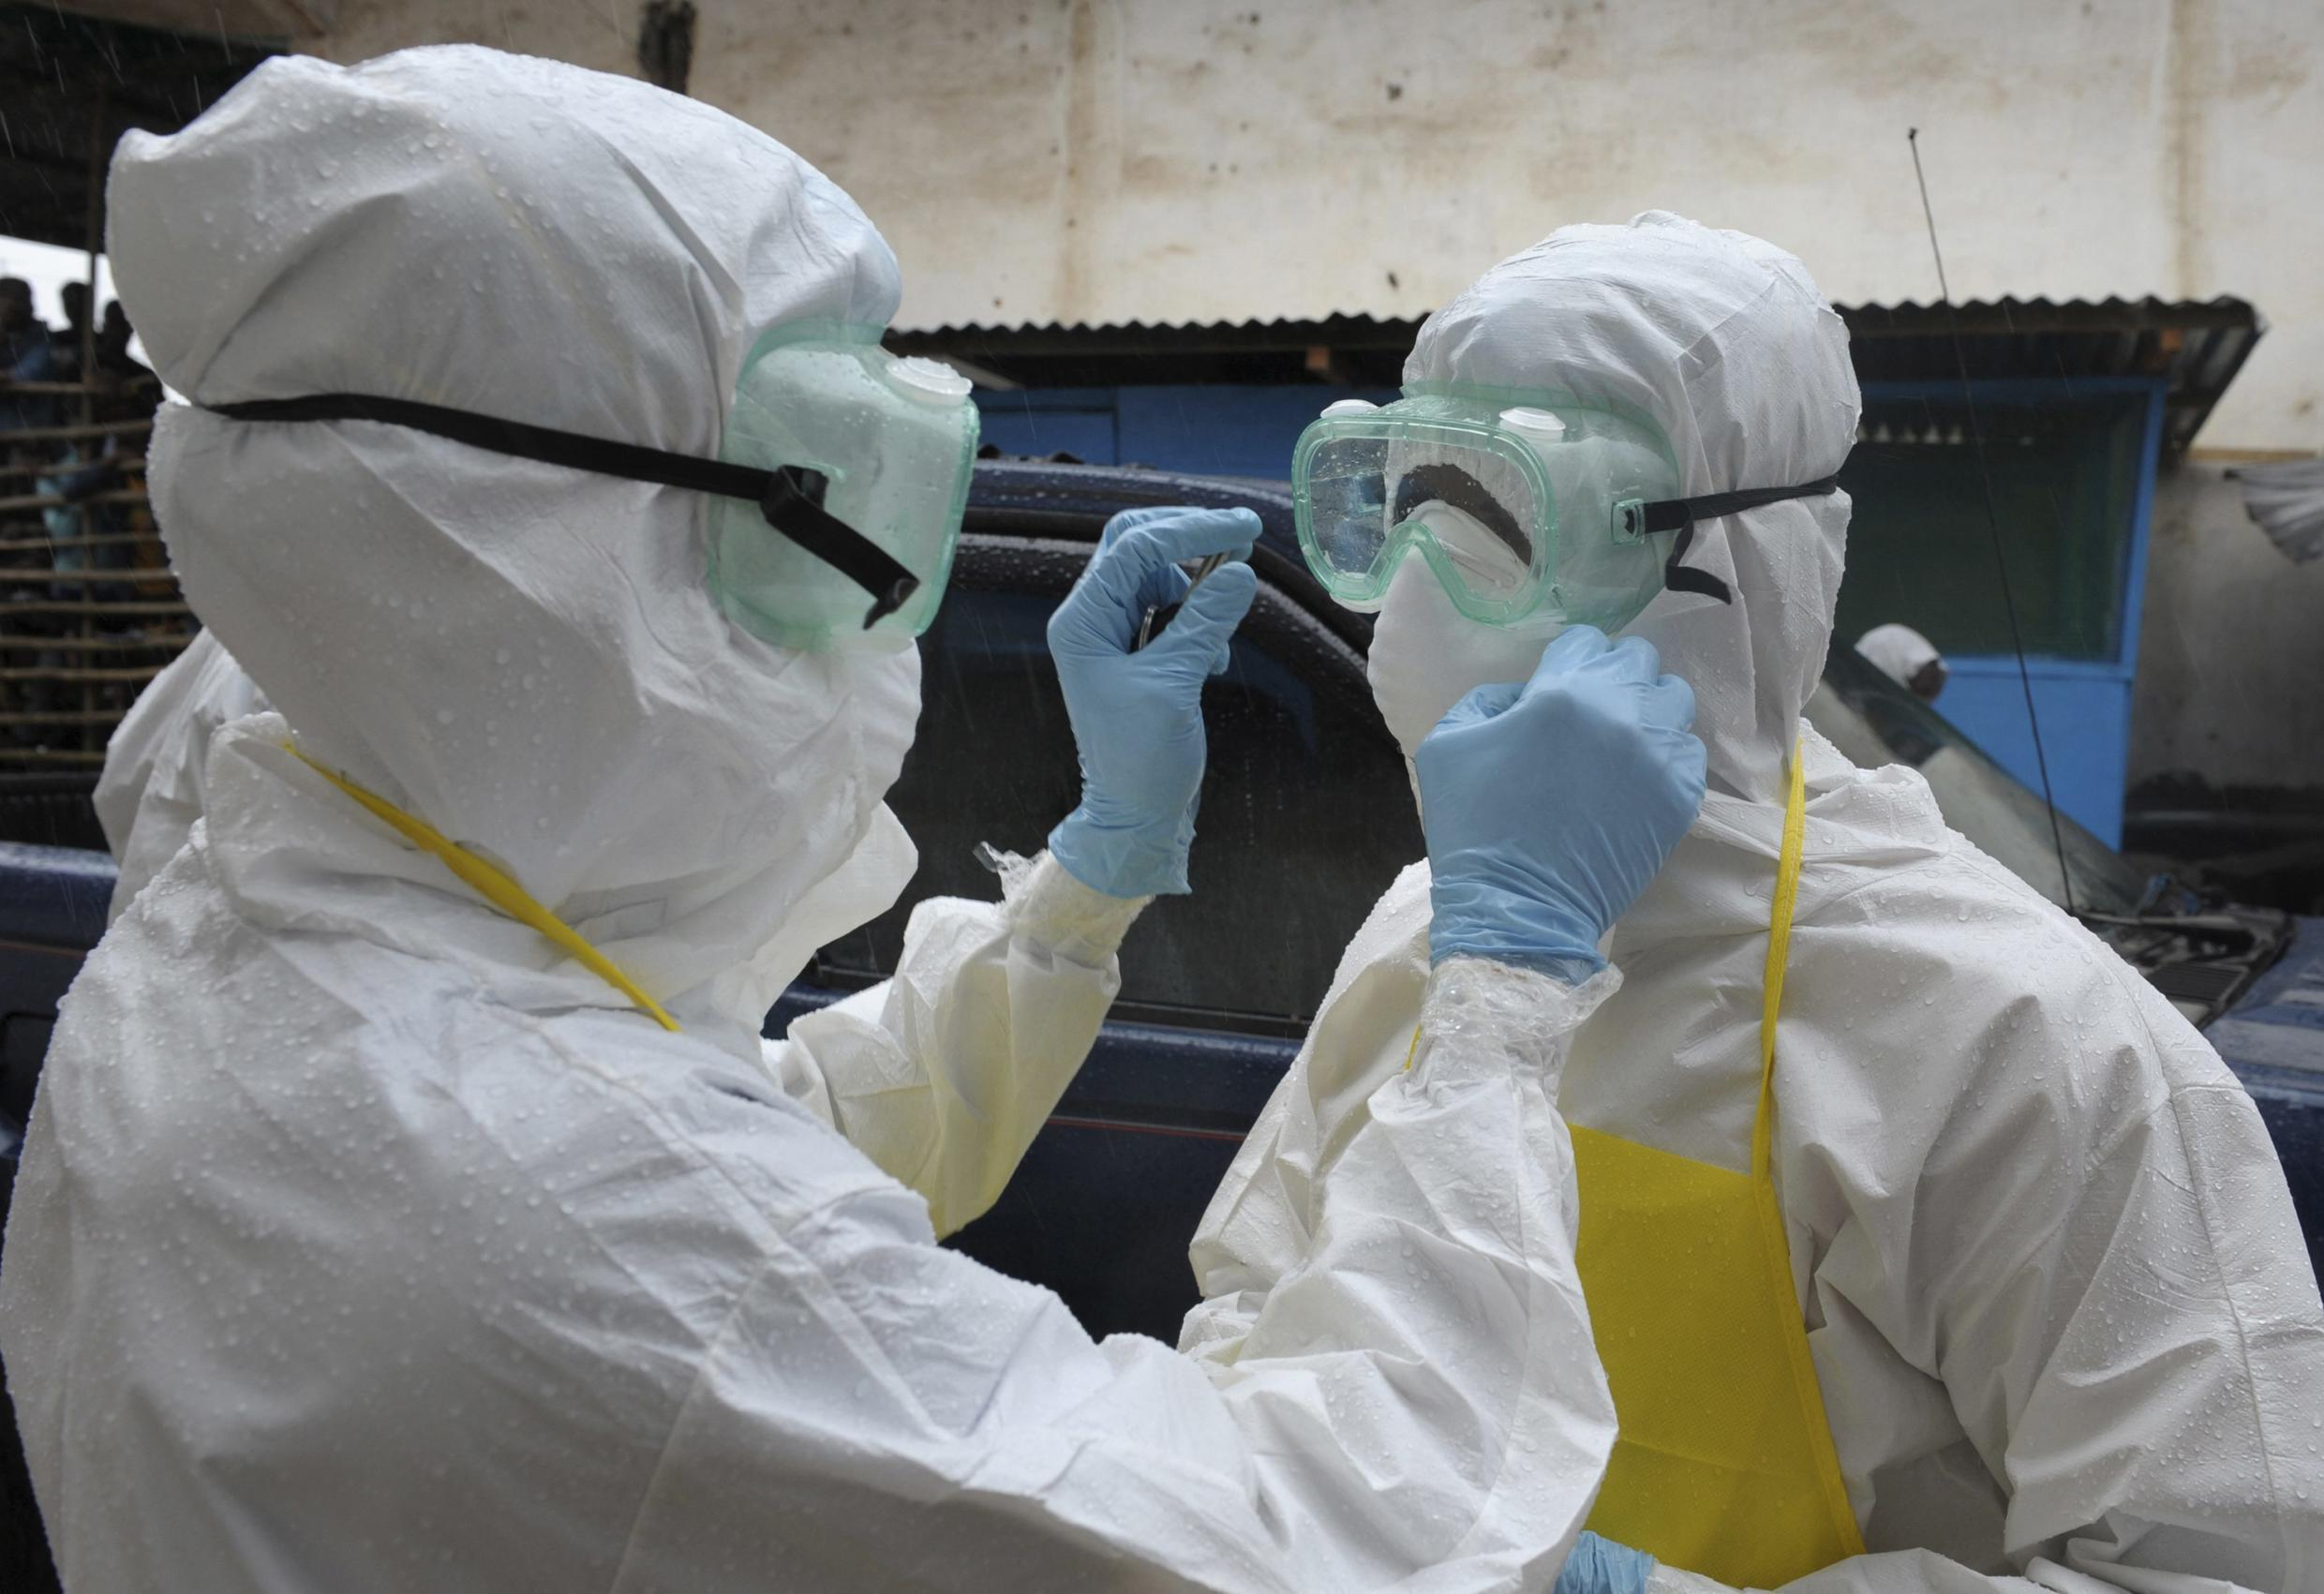 Medical personnel in protective suits treat Ebola in Liberia